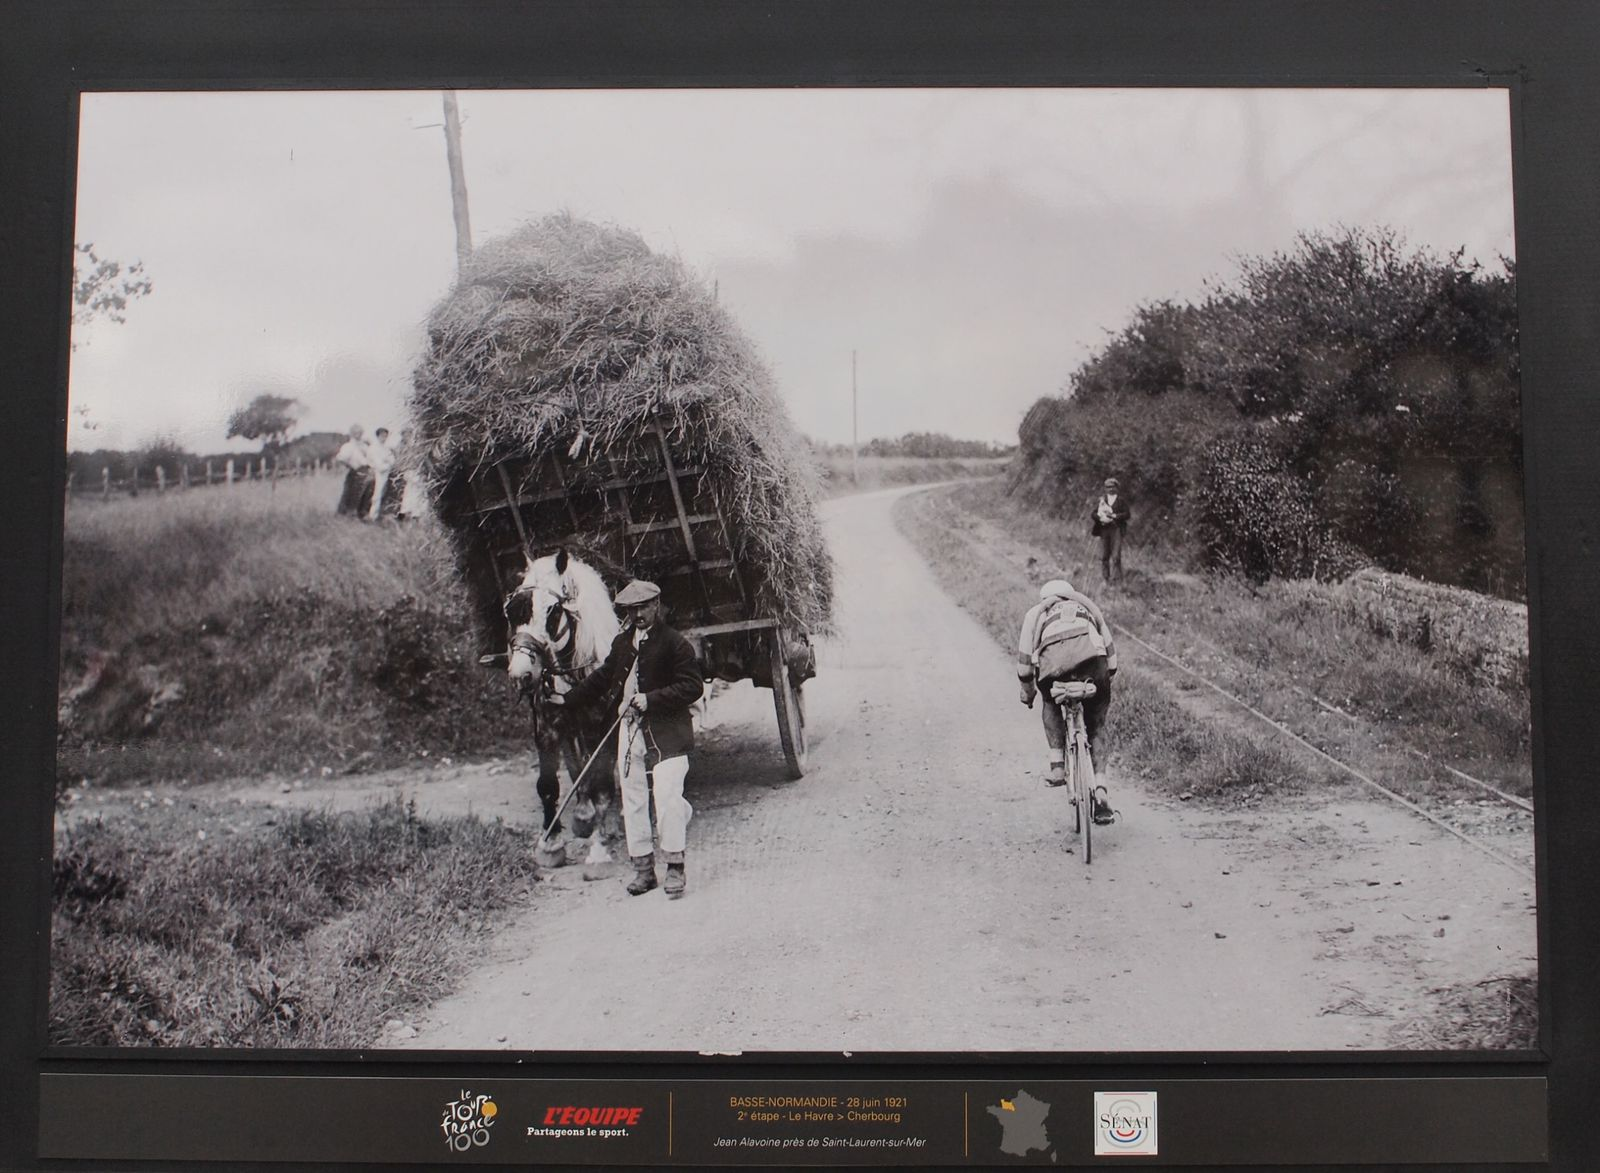 Tour-de-France-1921-bASSE-Normandie.JPG